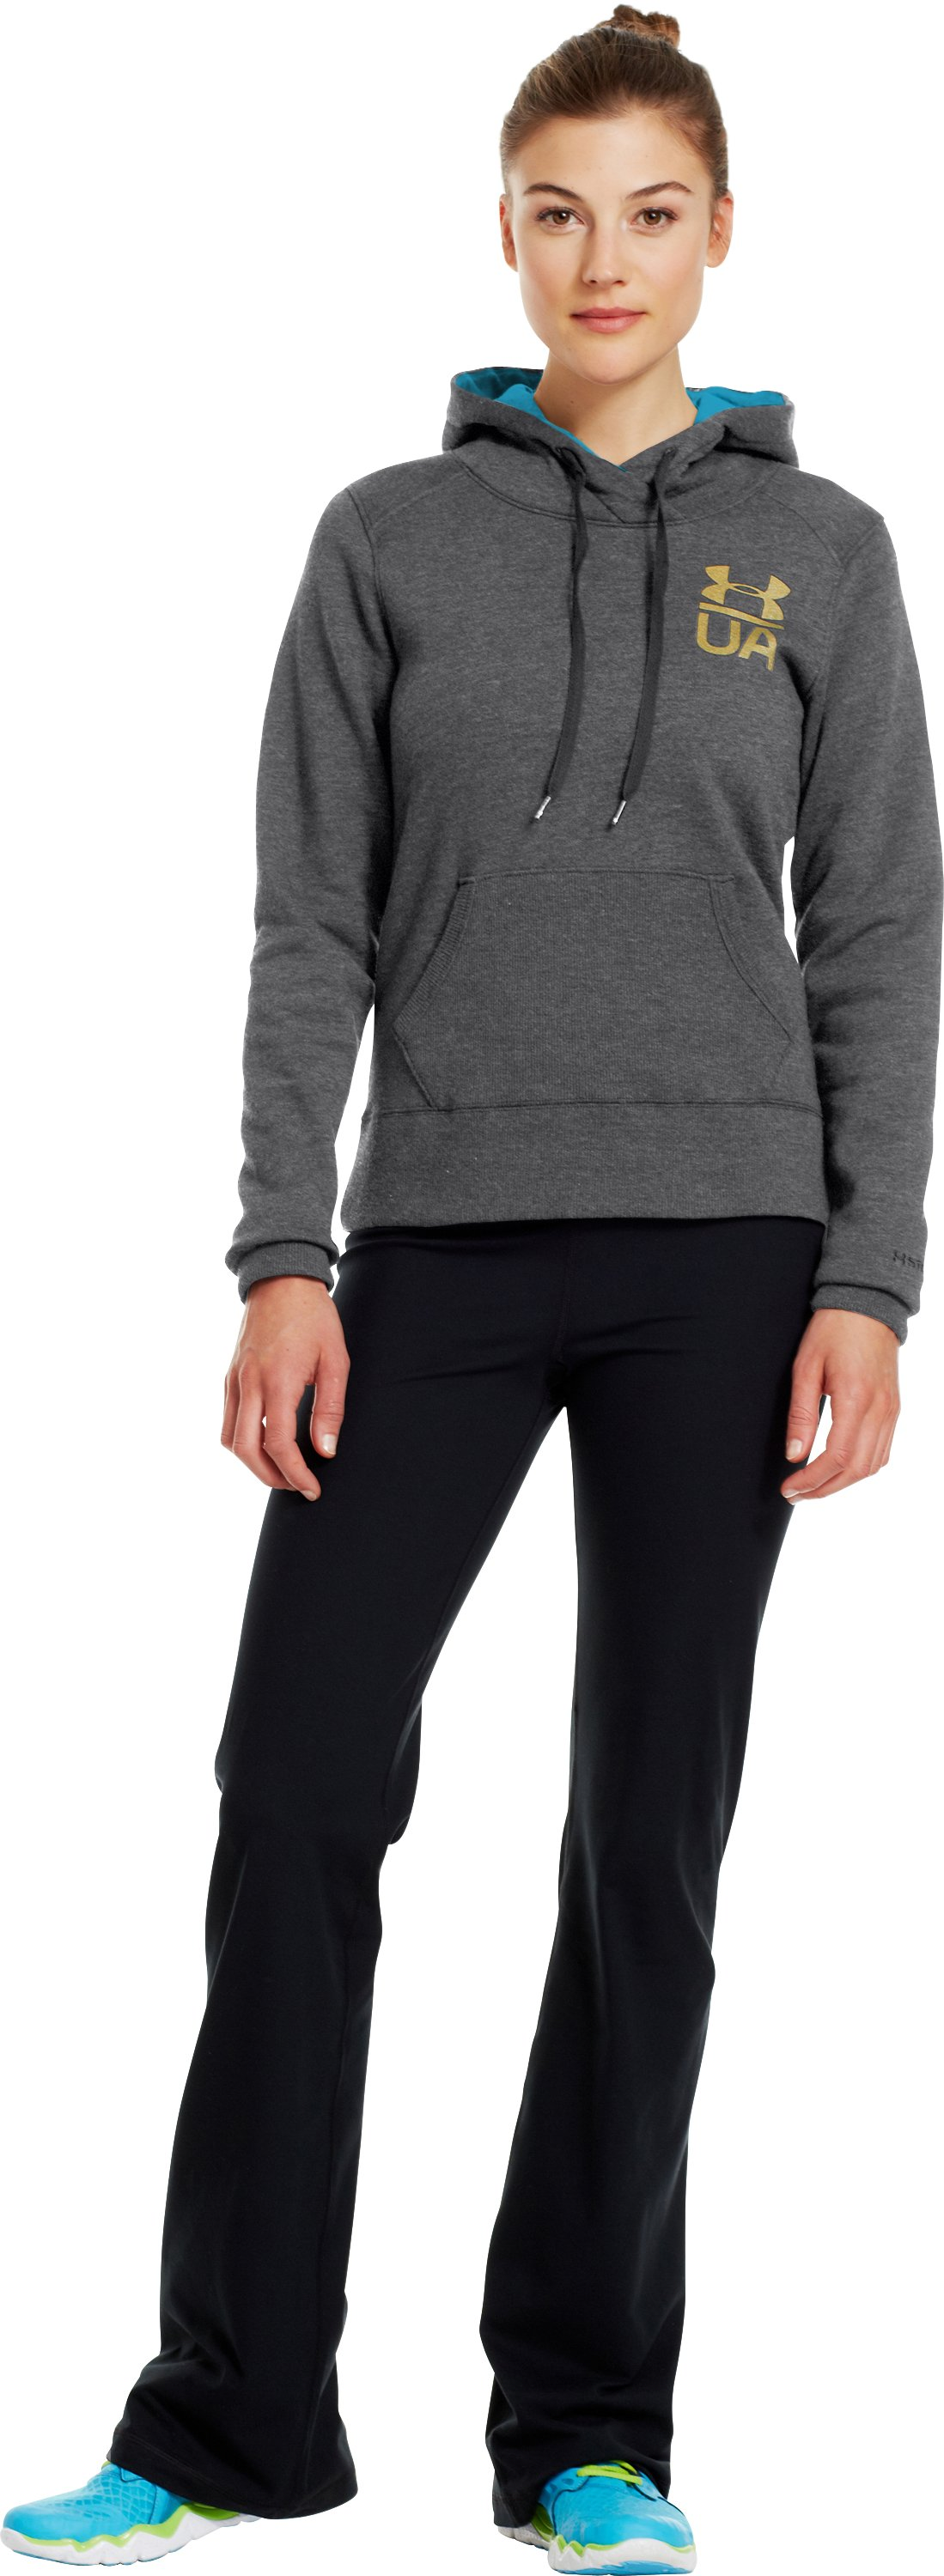 Women's Charged Cotton® Legacy Hoodie, Graphite, Front